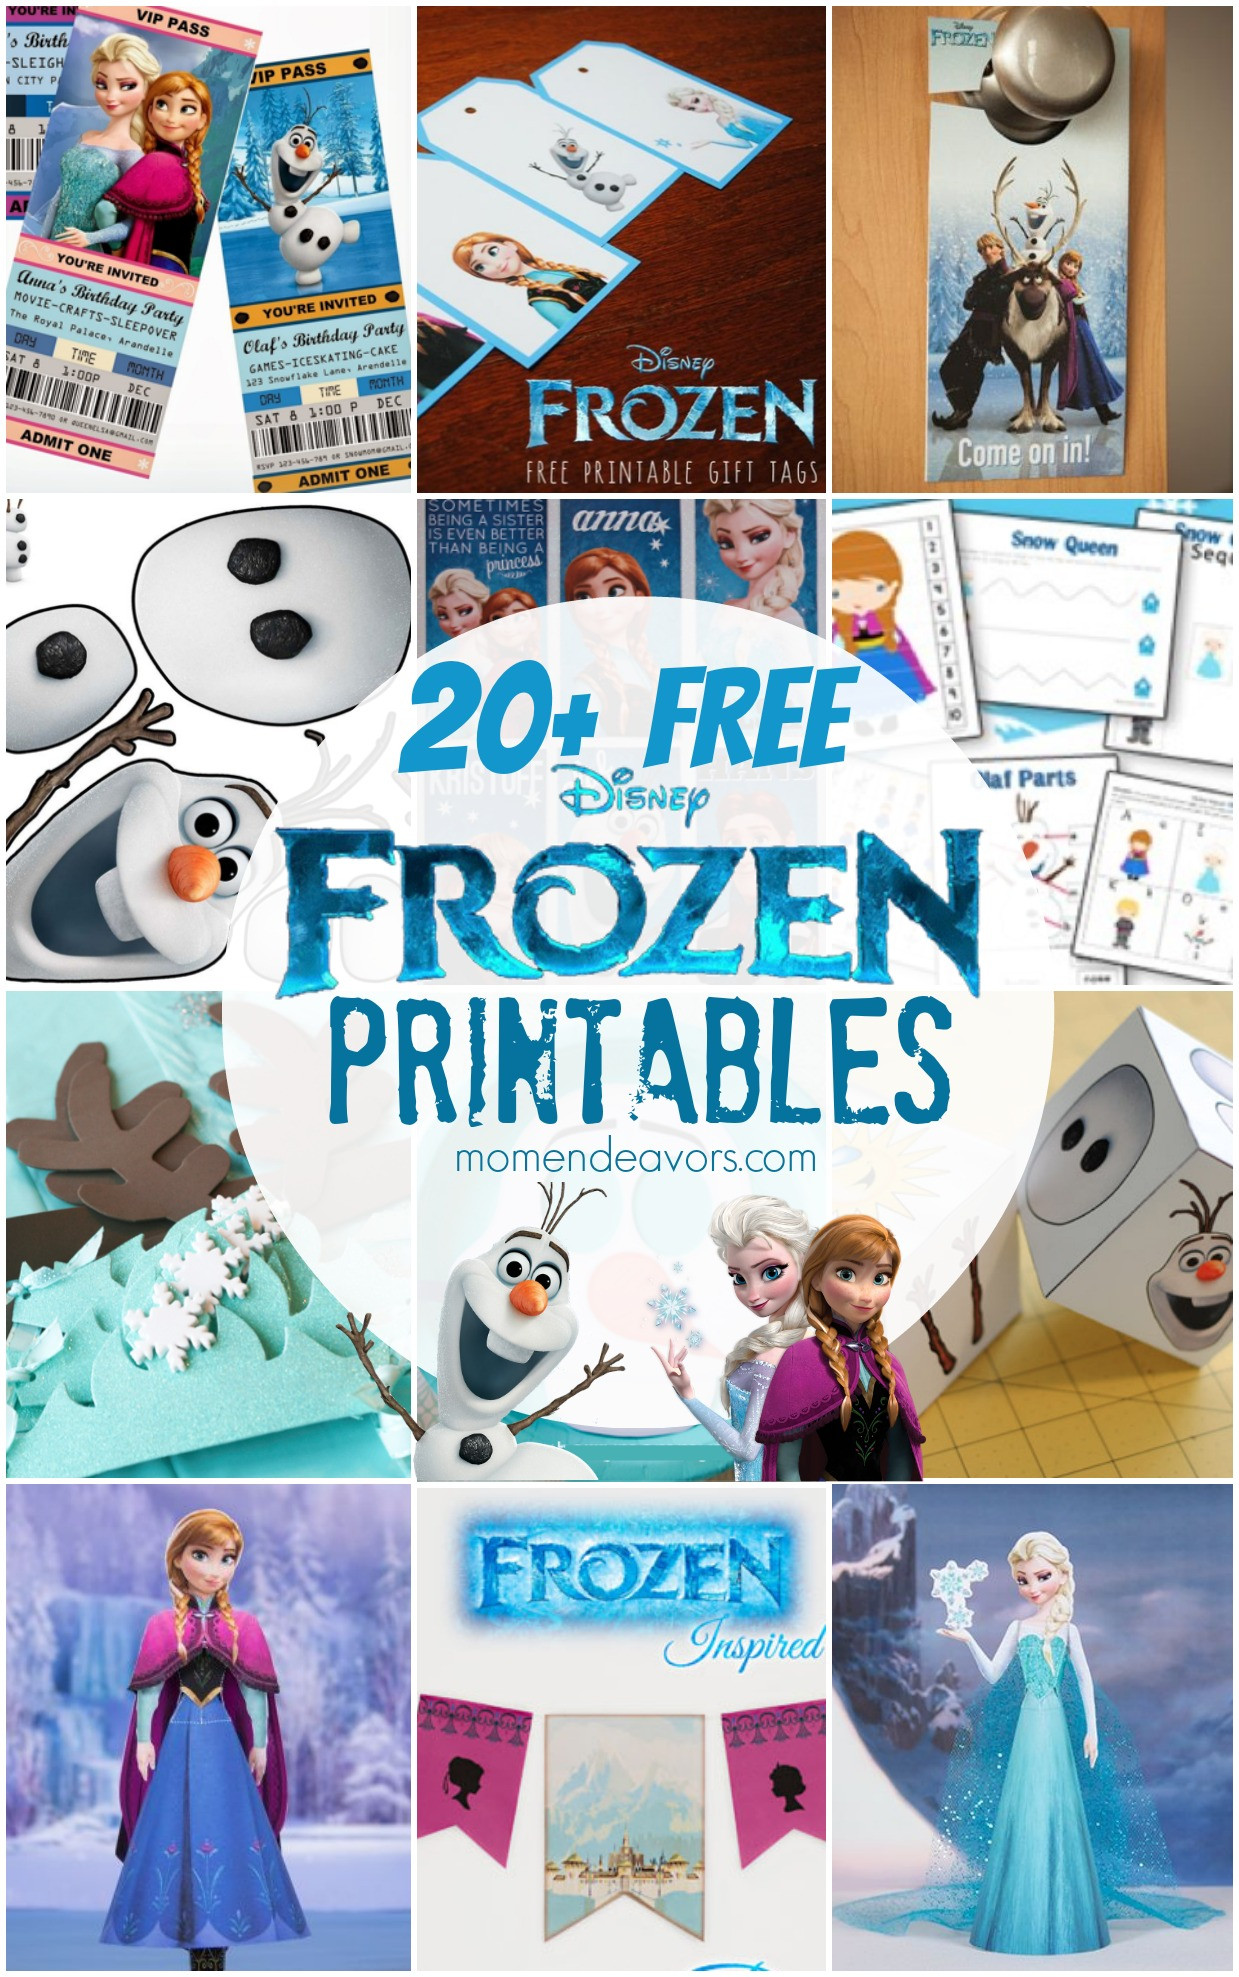 Frozen Invitations Printable 20 Free Disney Frozen Printables Activity Sheets & Party